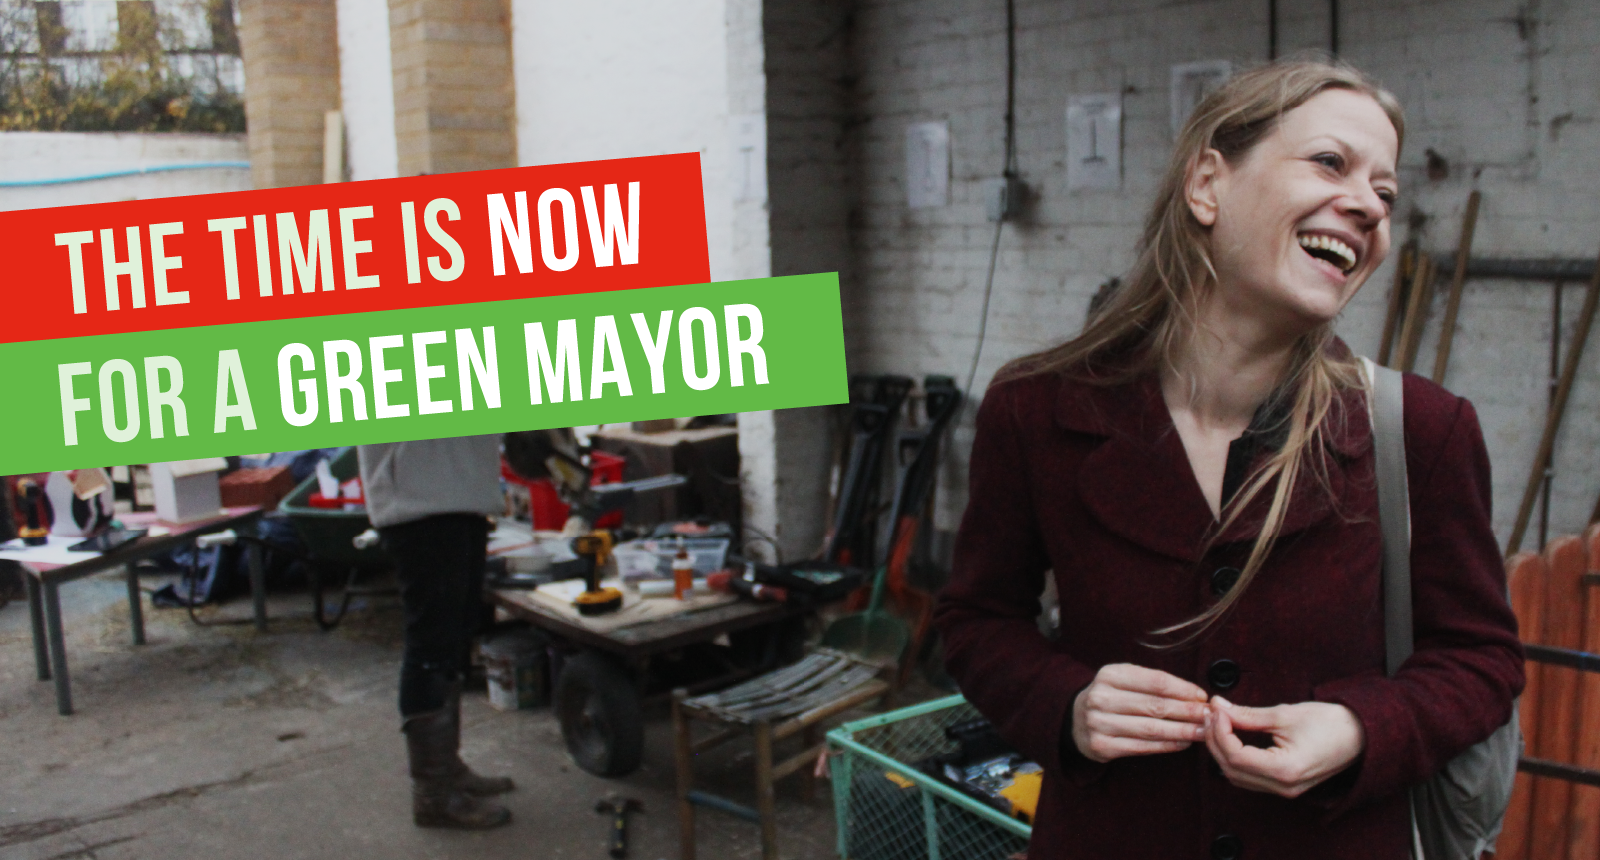 The Time is Now for a Green Mayor - at Kentish Town City Farm